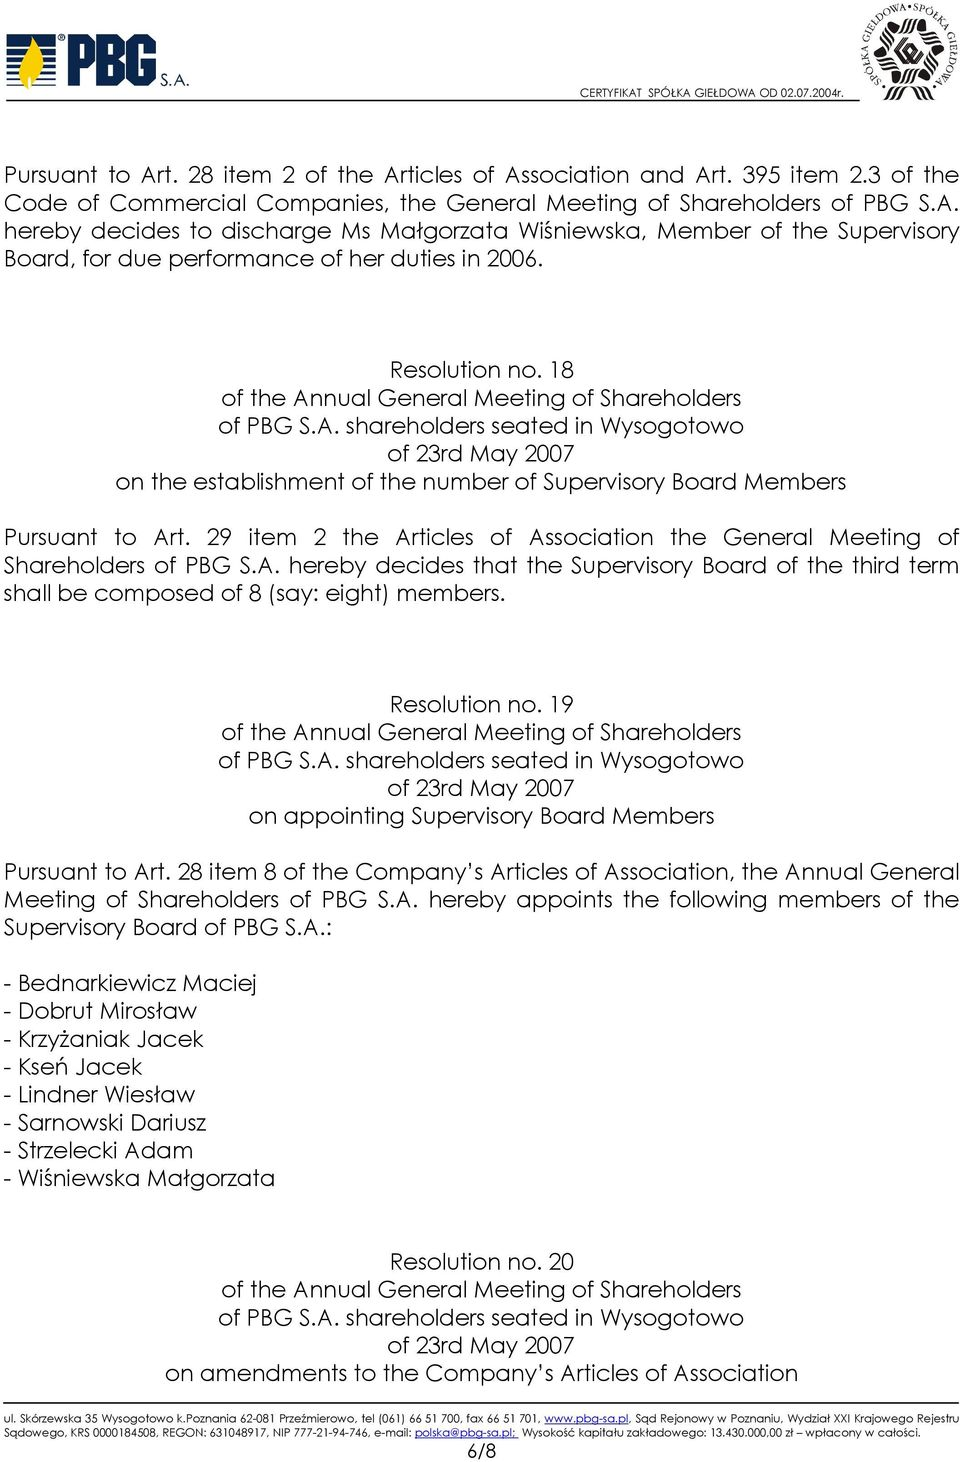 Resolution no. 19 on appointing Supervisory Board Members Pursuant to Art. 28 item 8 of the Company s Articles of Association, the Annual General Meeting of Shareholders of PBG S.A. hereby appoints the following members of the Supervisory Board of PBG S.